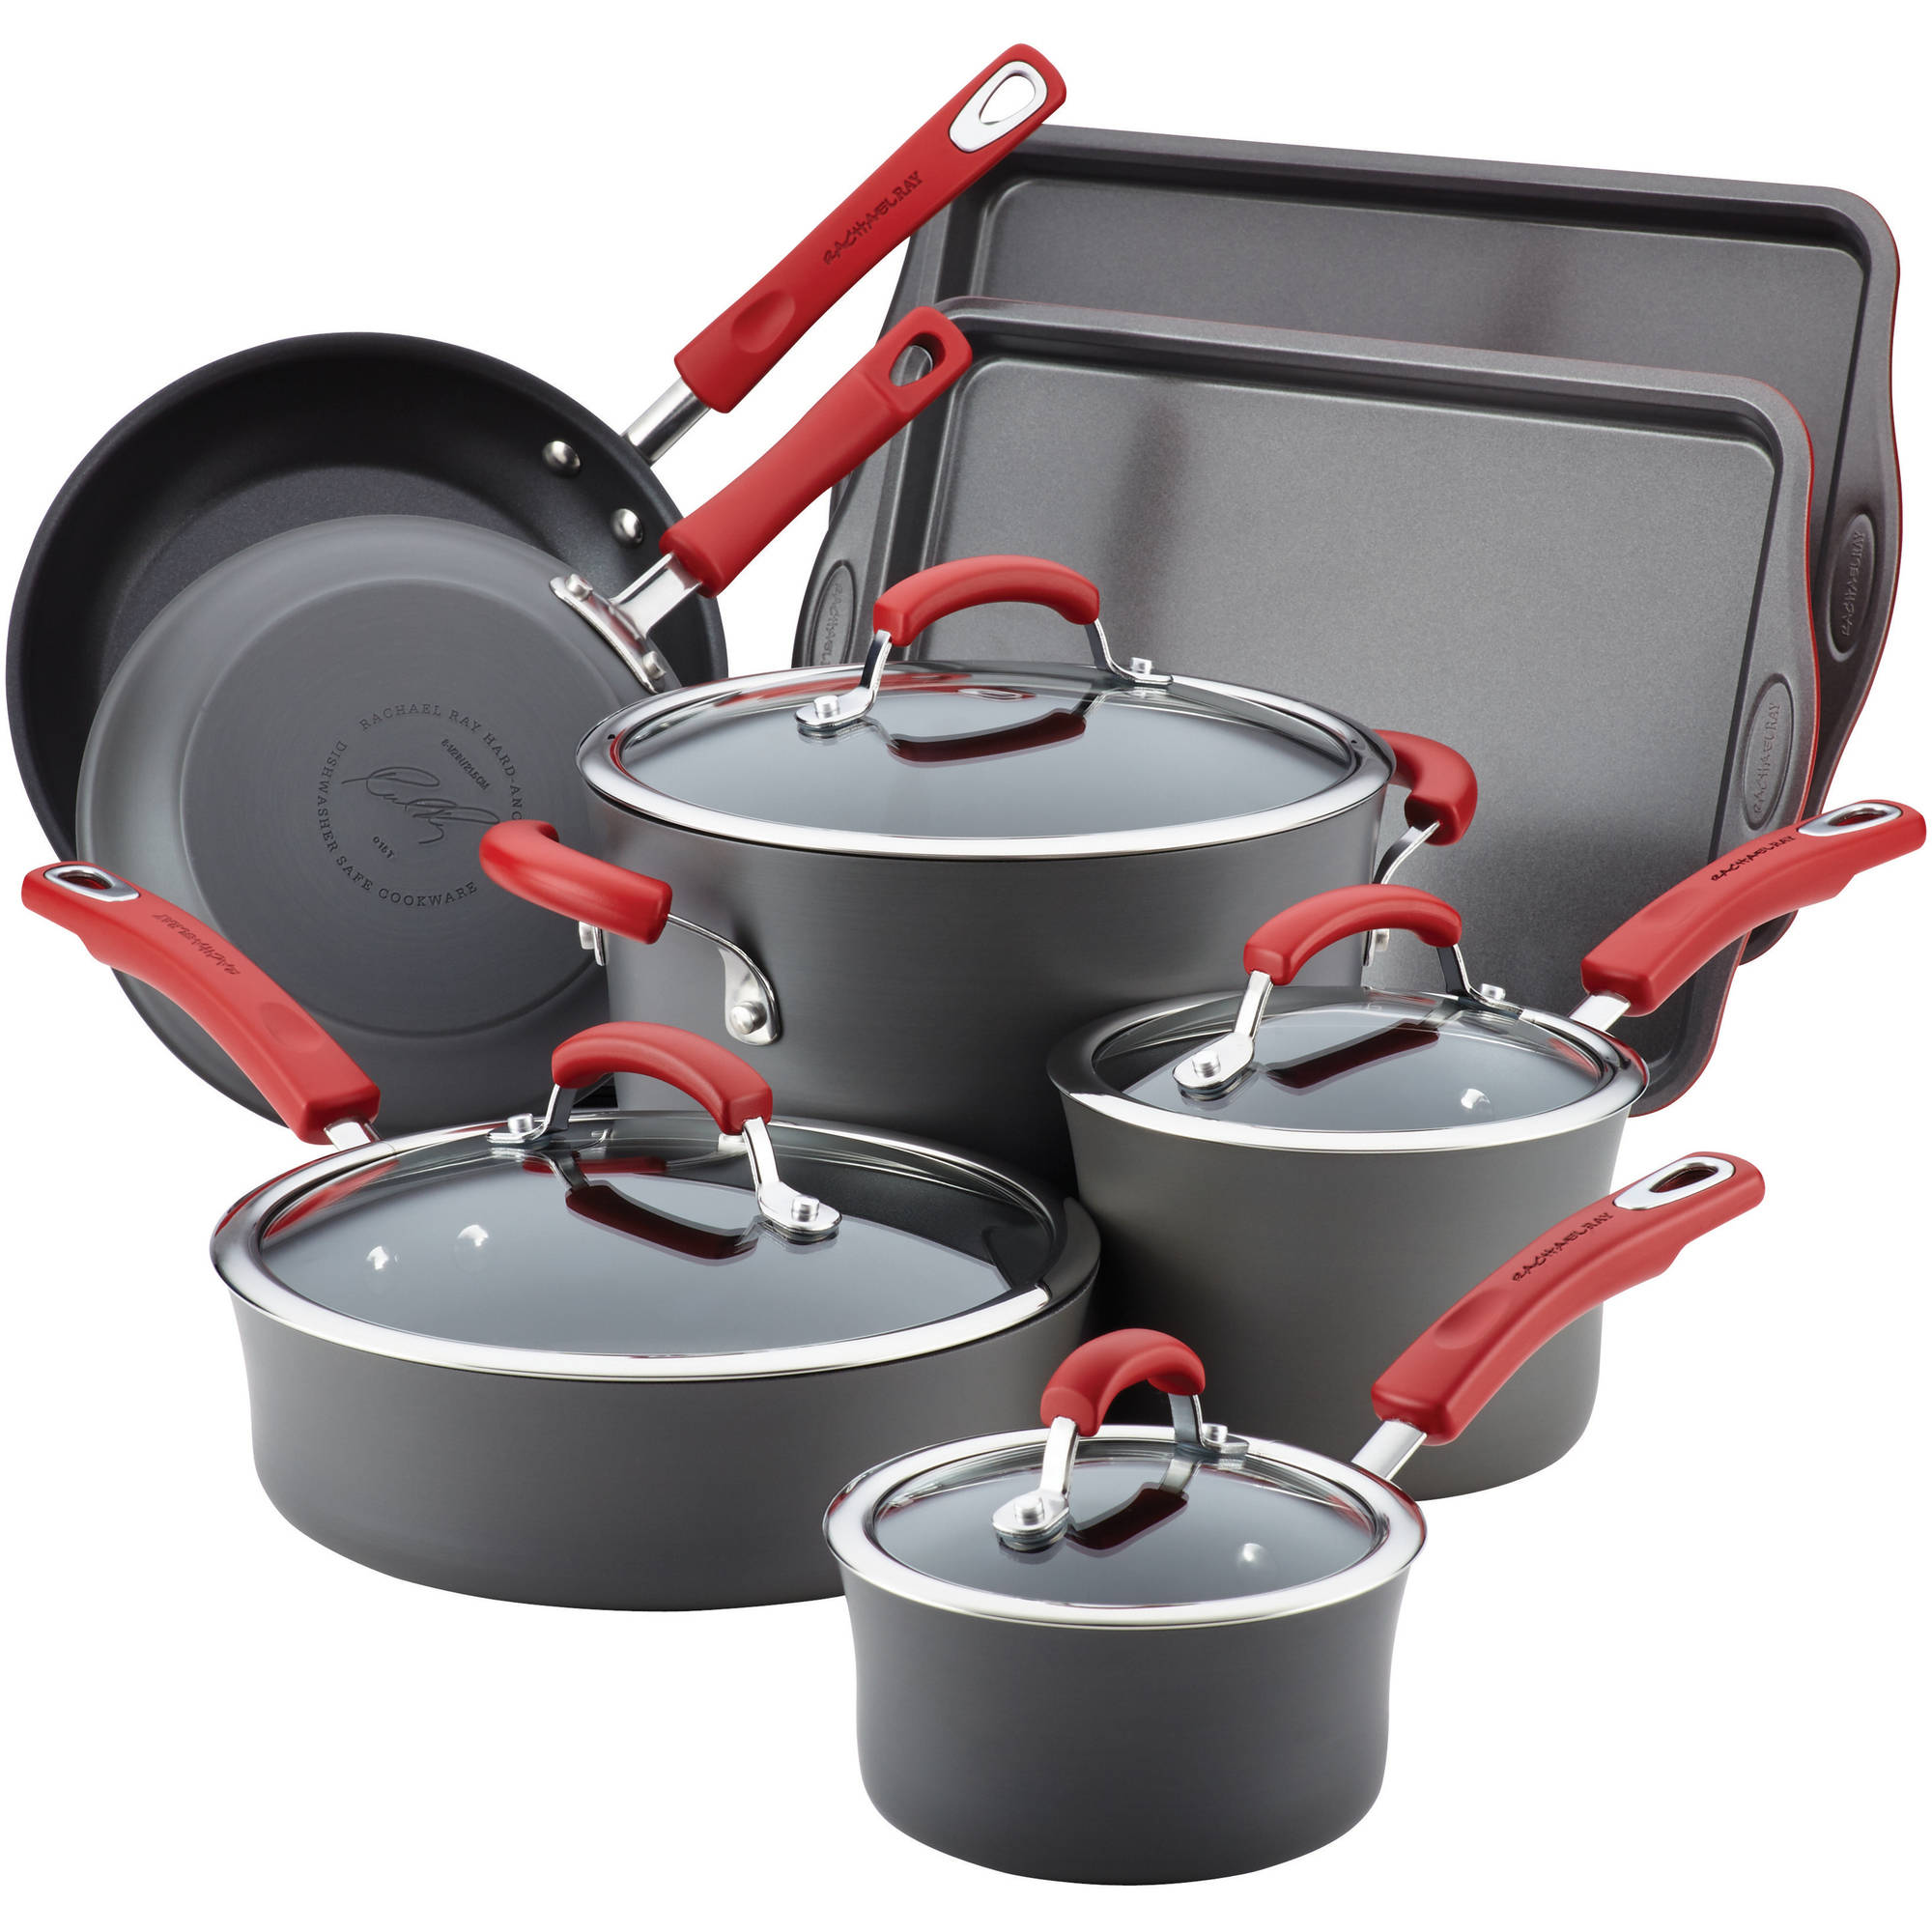 Rachael Ray Hard Anodized Non Stick Grey Cookware Set With Red Handles 12 Piece